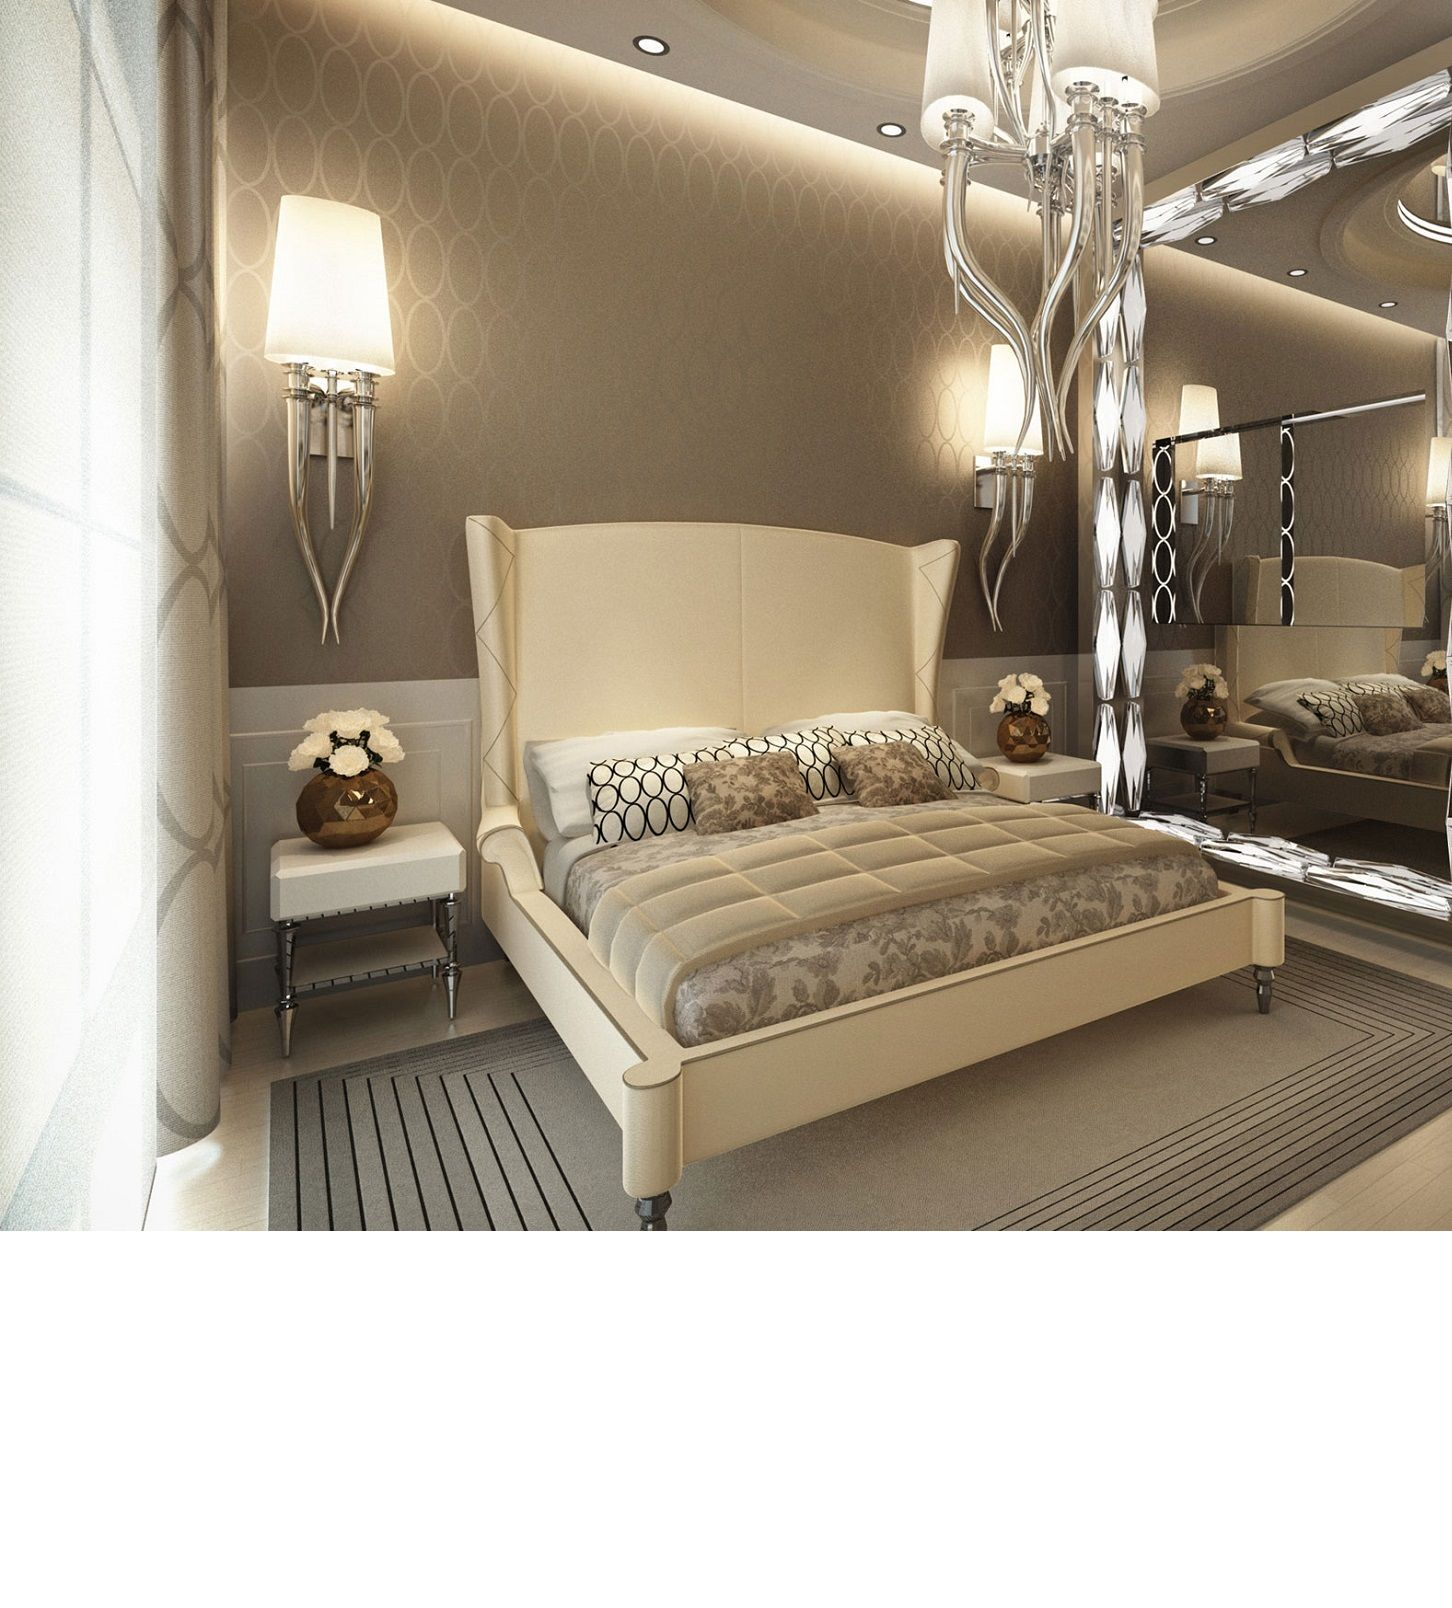 Luxury Bedroom Interior Design Inspiring Star Hotel Penthouse - Star bedroom furniture